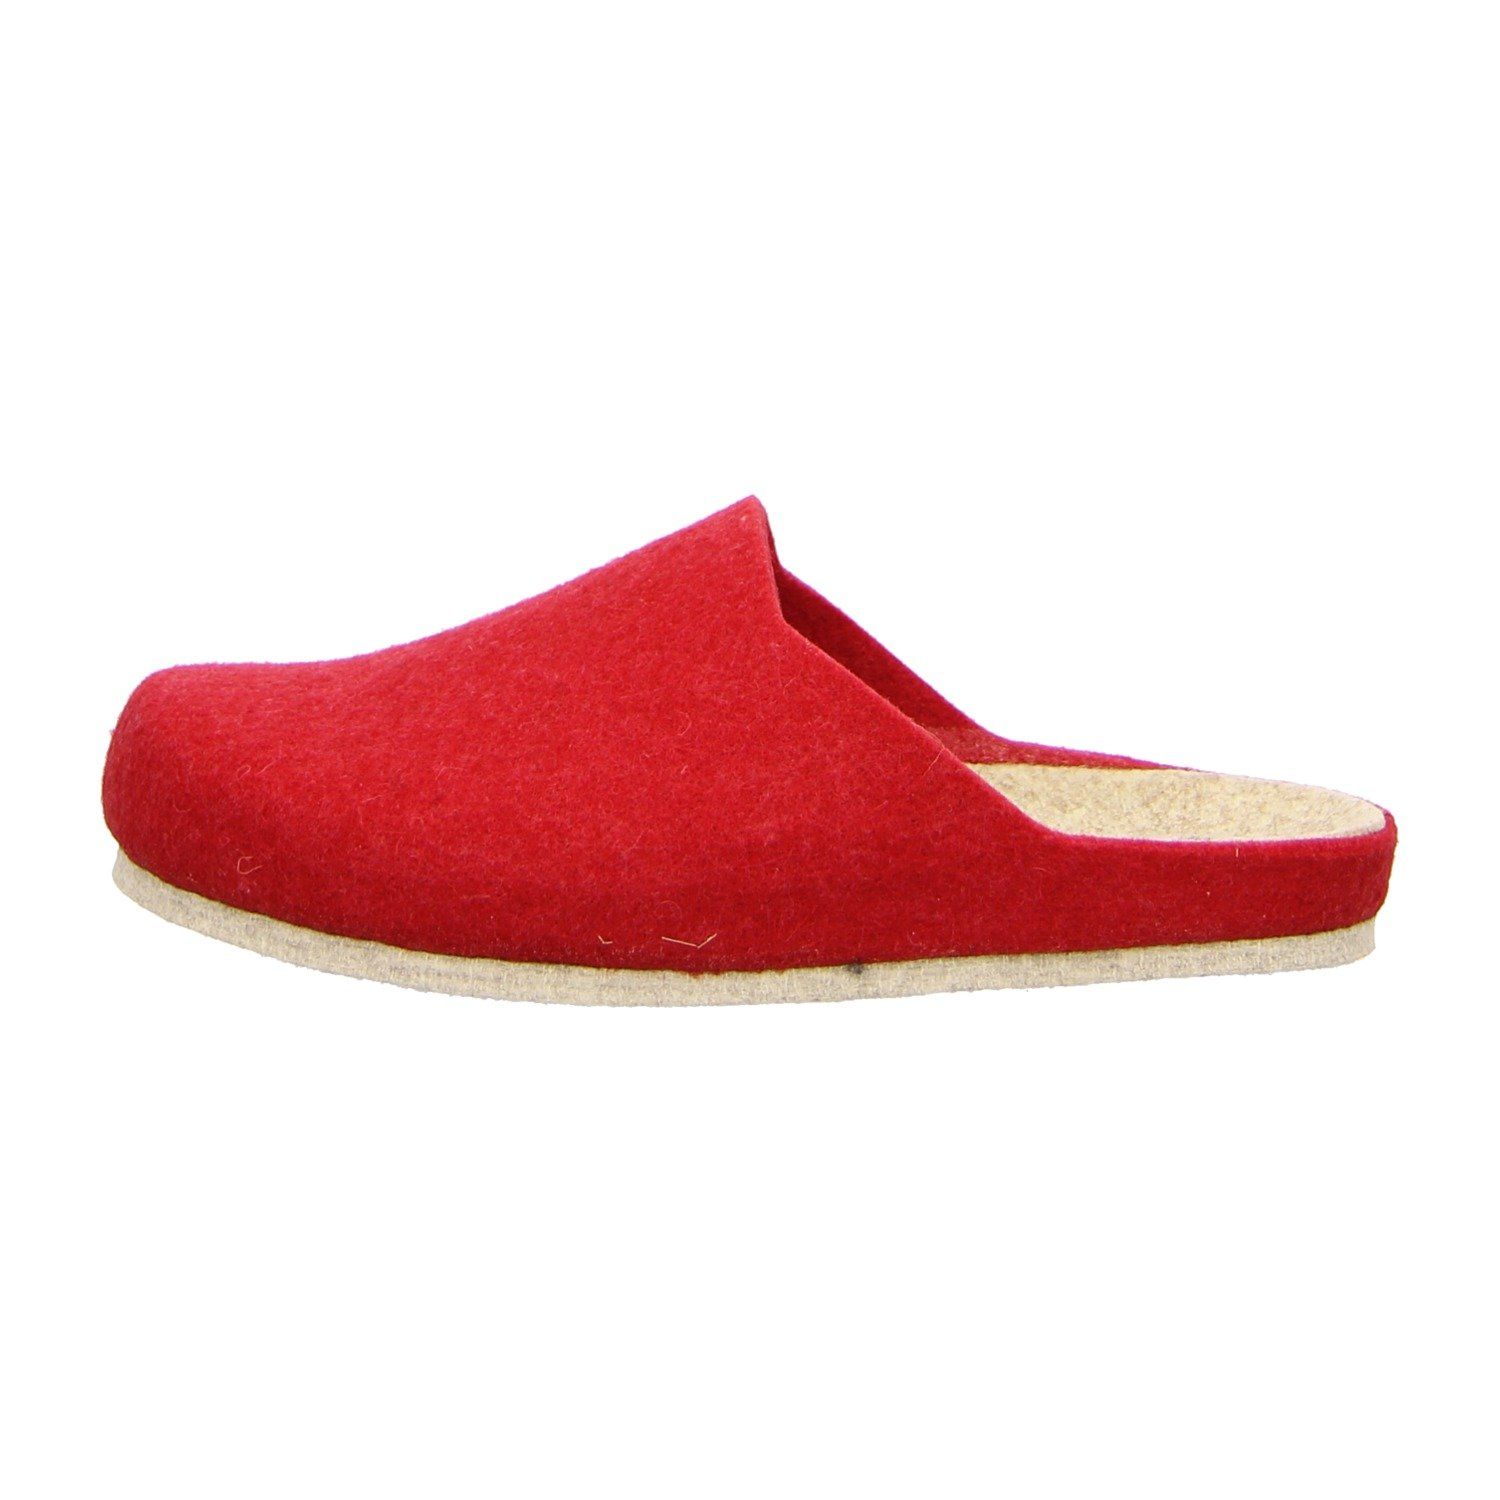 Longo-chaussons Longo-chaussons Rouge - - 13312 Rouge 88c0b30 - deadsea.space